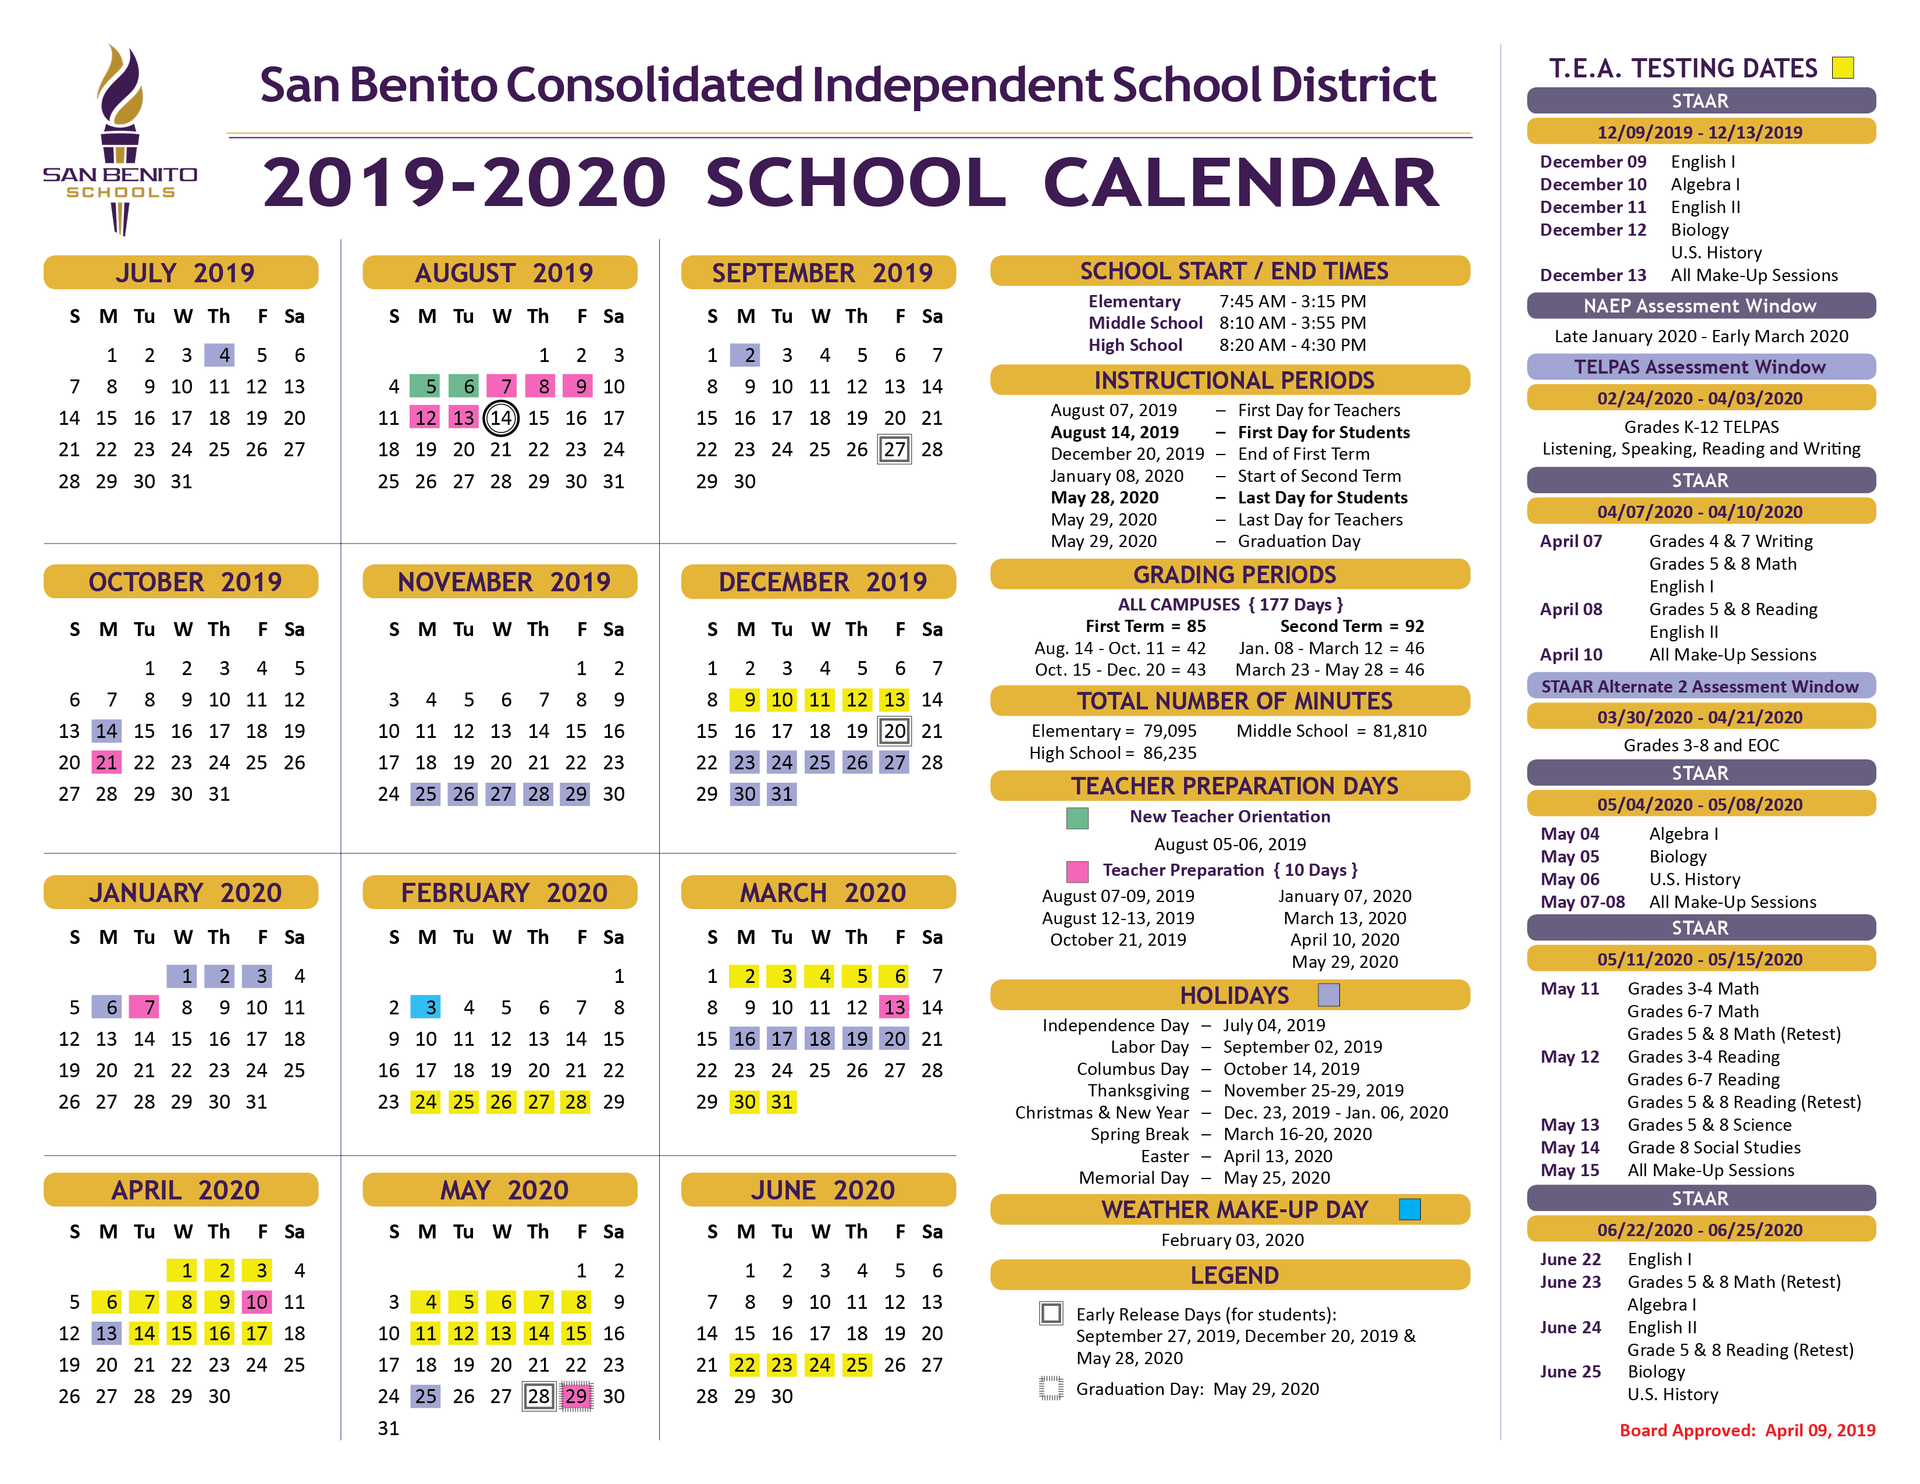 Hisd School Calendar 2020 School Calendar – District – San Benito Consolidated Independent